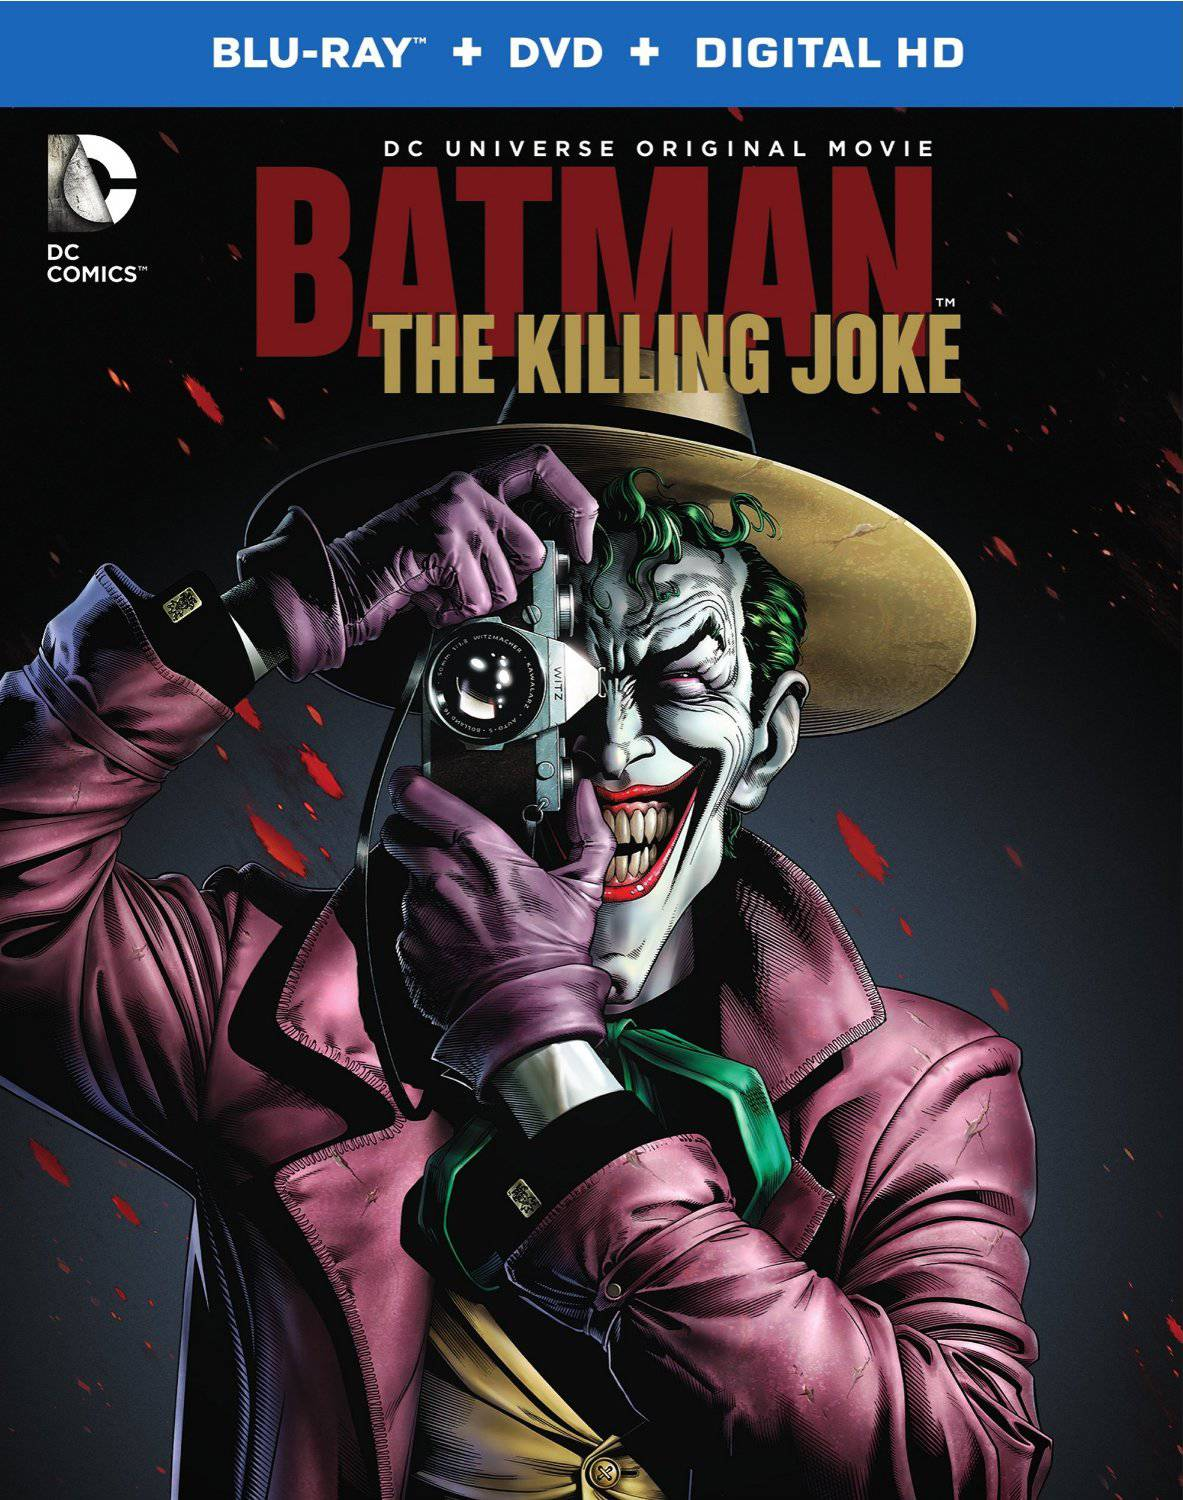 http://media.comicbook.com/2016/05/batman-killing-joke-box-art-181456.jpg